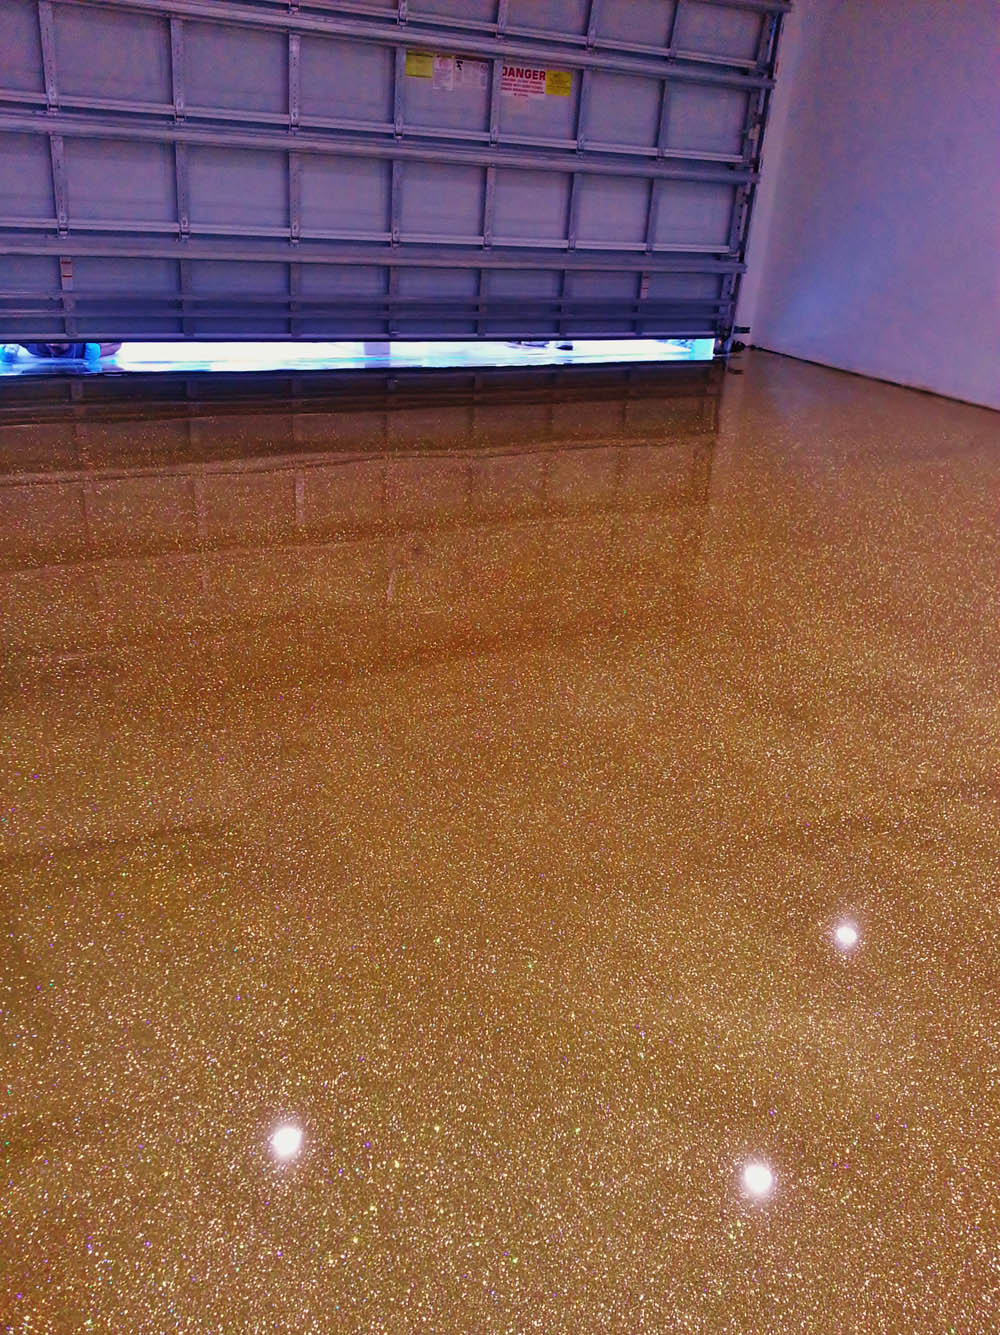 Epoxy Floor Systems By Fundisa Restoration Group - Epoxy floor coating over asbestos tile